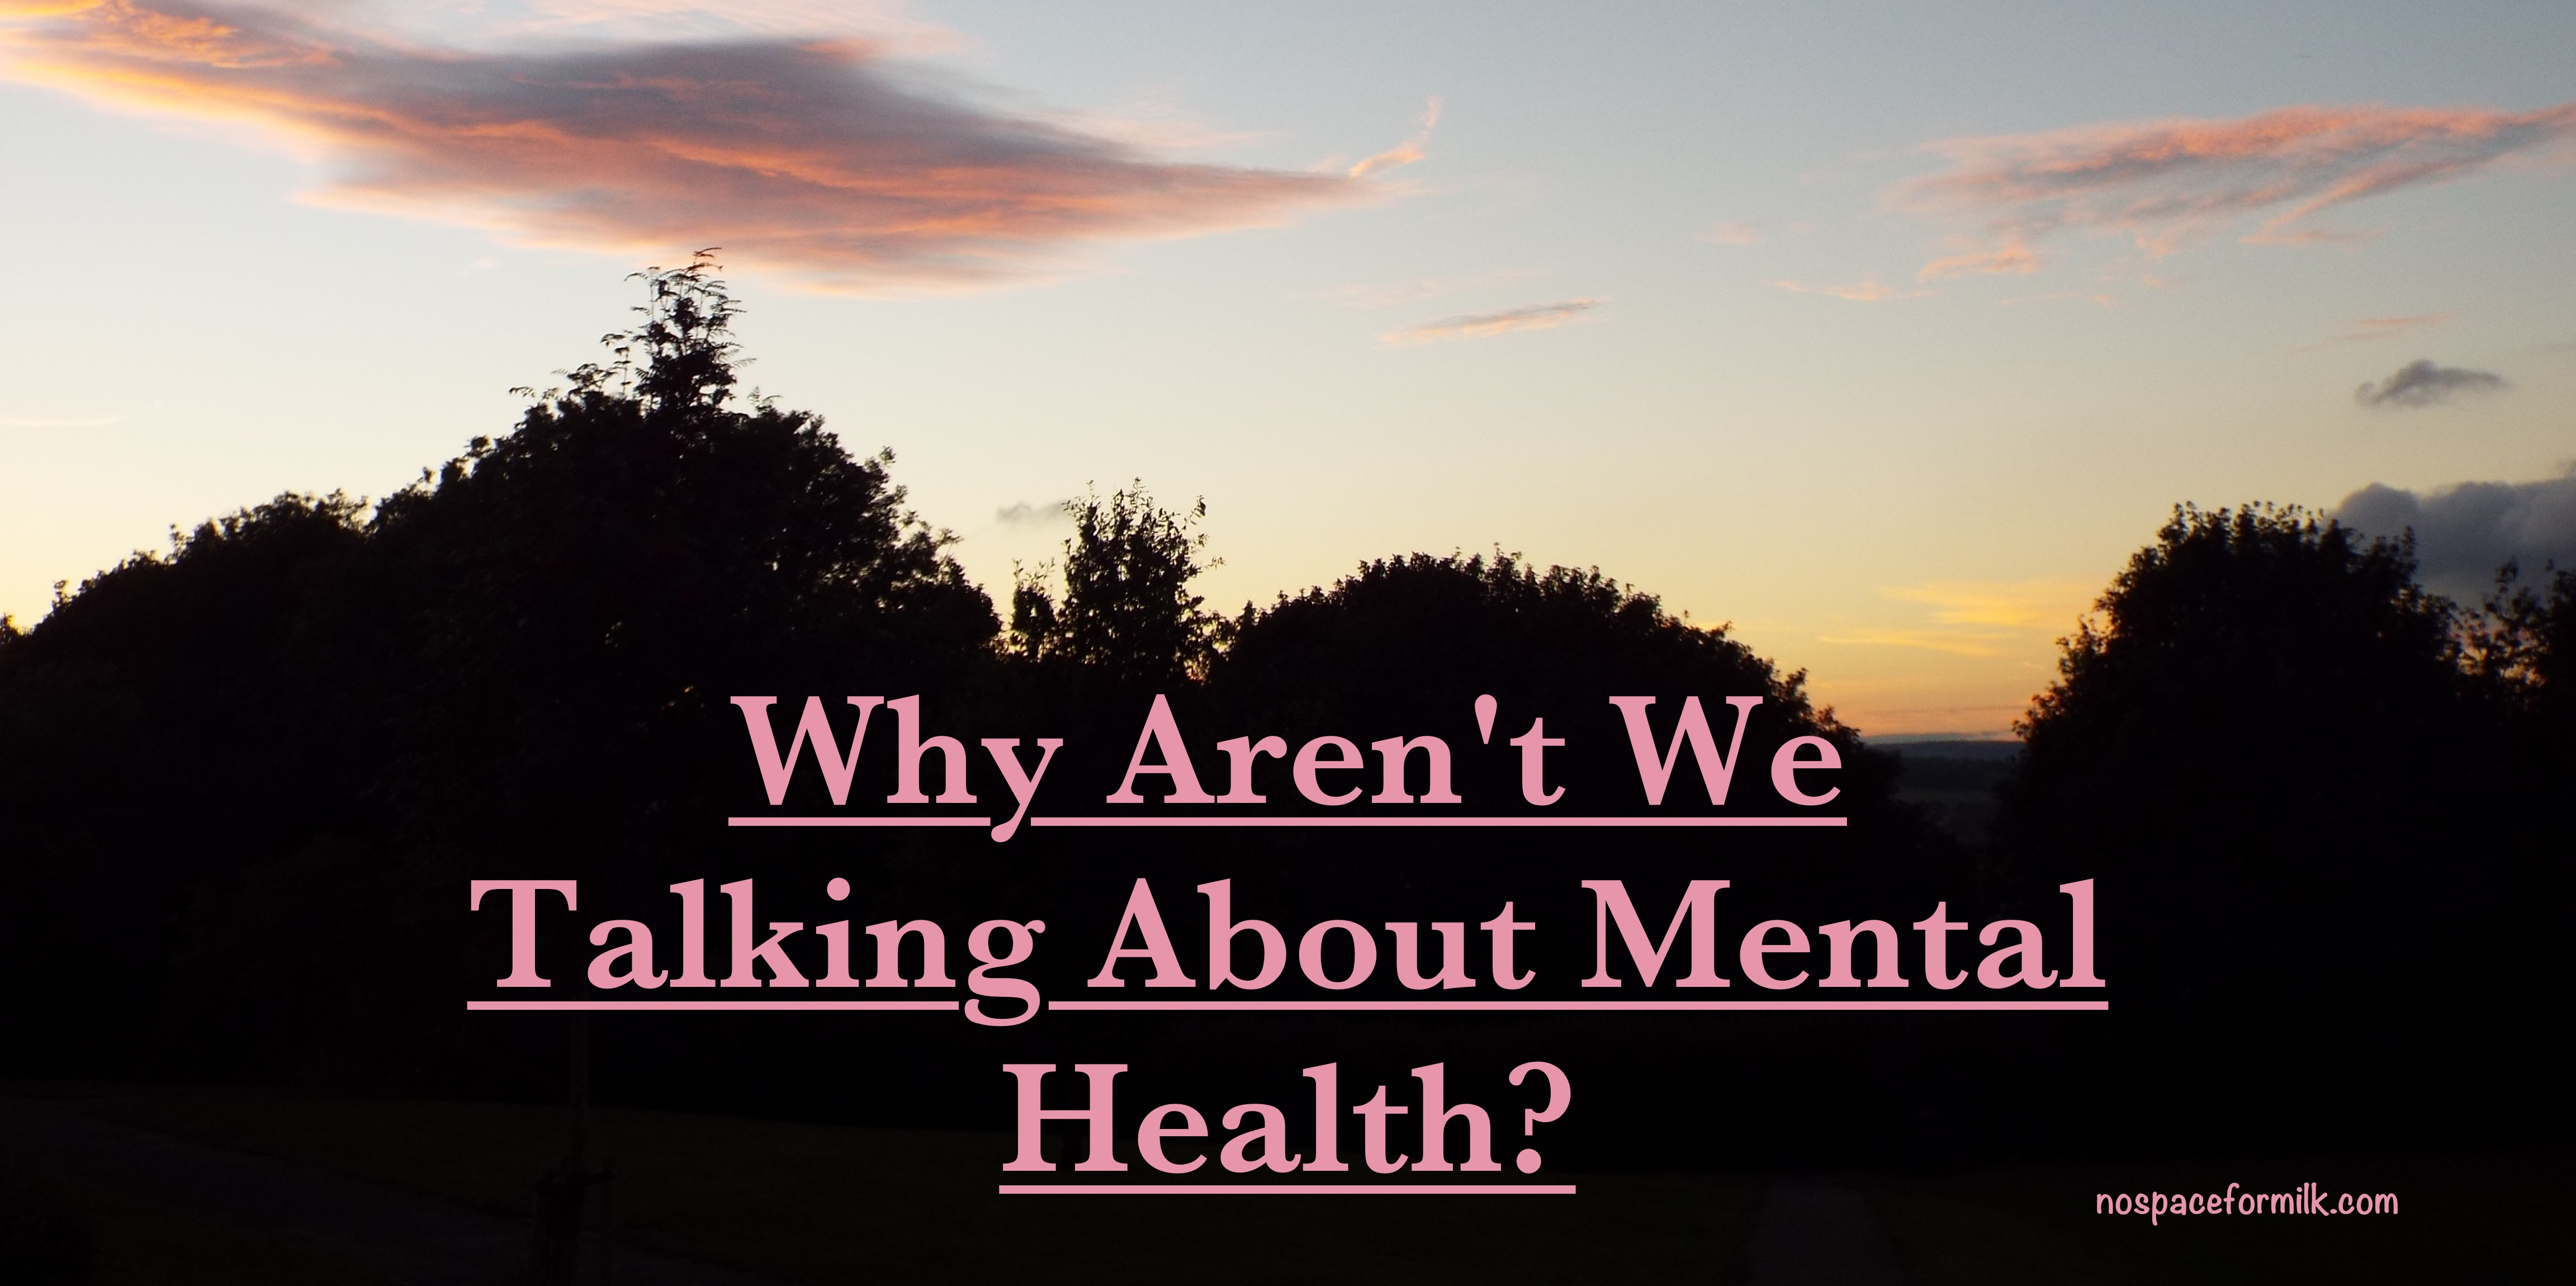 Why Aren't We Talking About Mental Health?